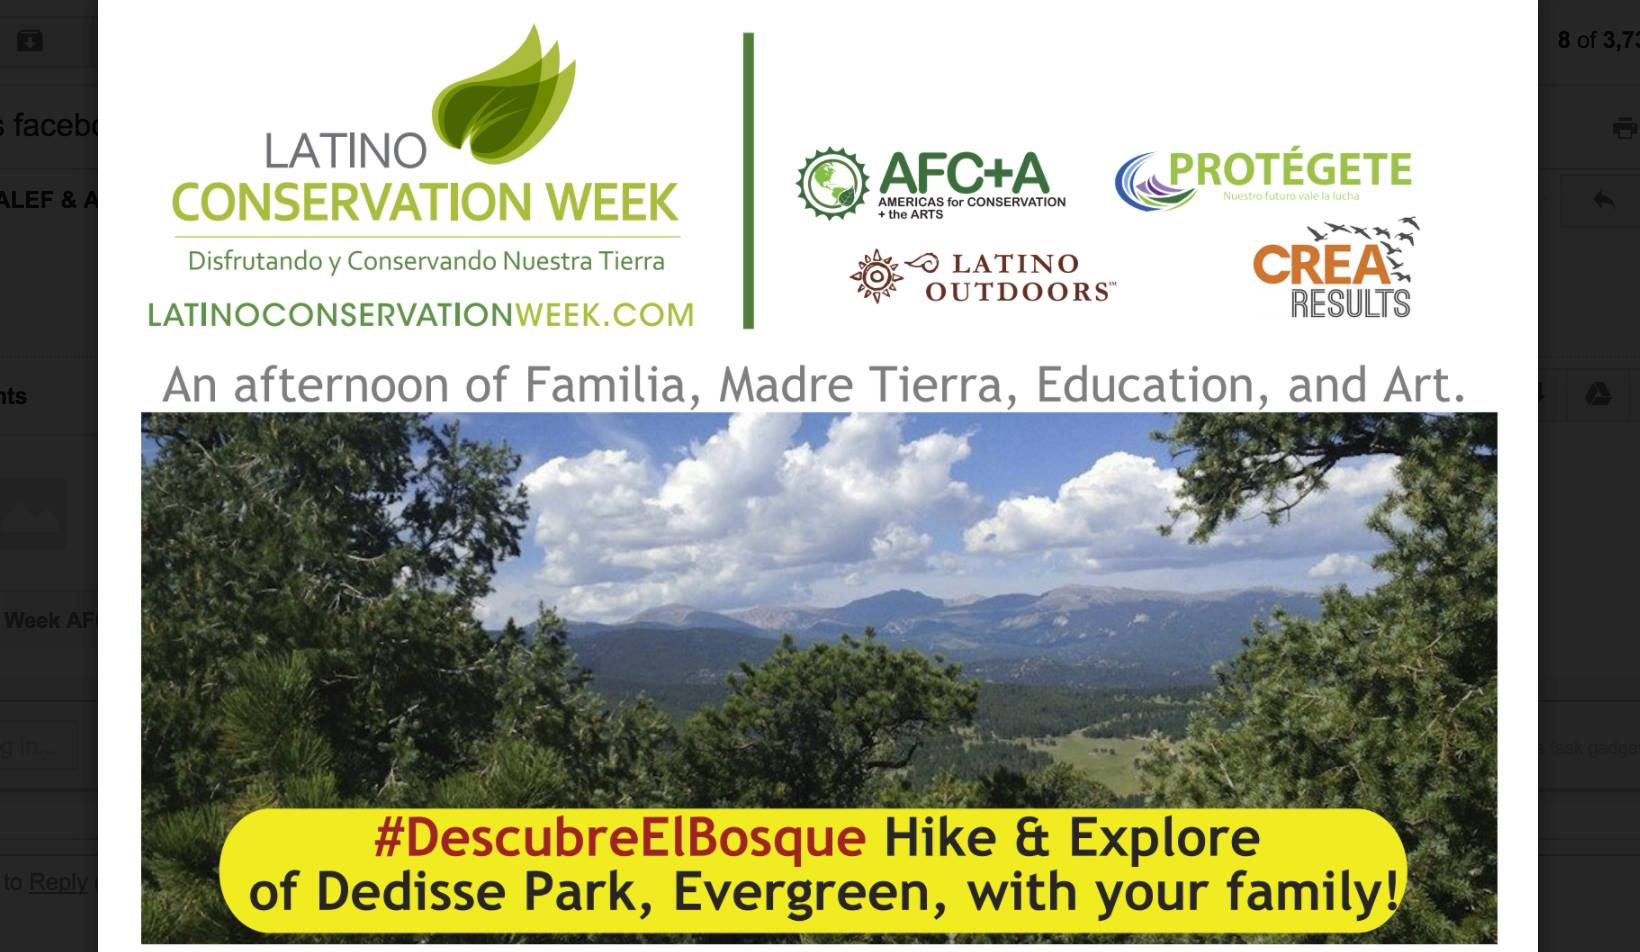 #DescubreElBosque Hike & Explore Dedisse Park with your family - Pasea y Explora Dedisse Park con tu familia